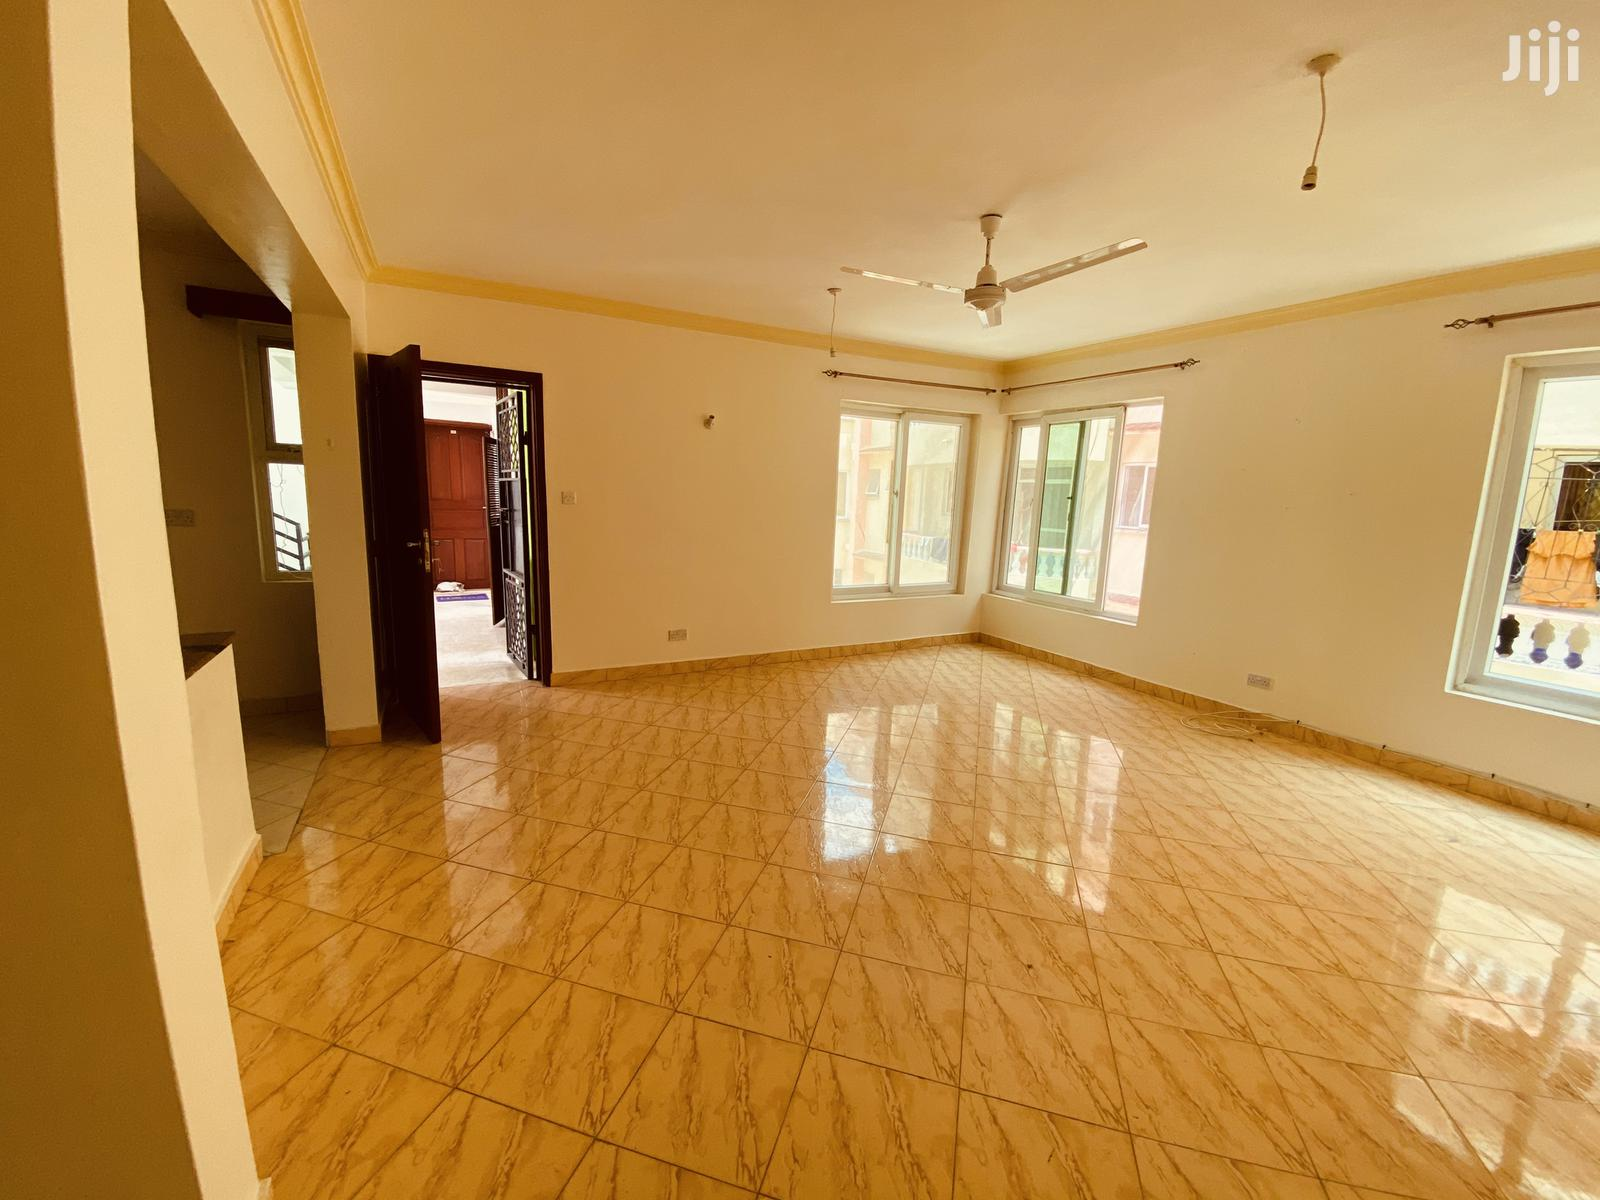 Outstanding 3 Bedroom Apartment With 24hr Security